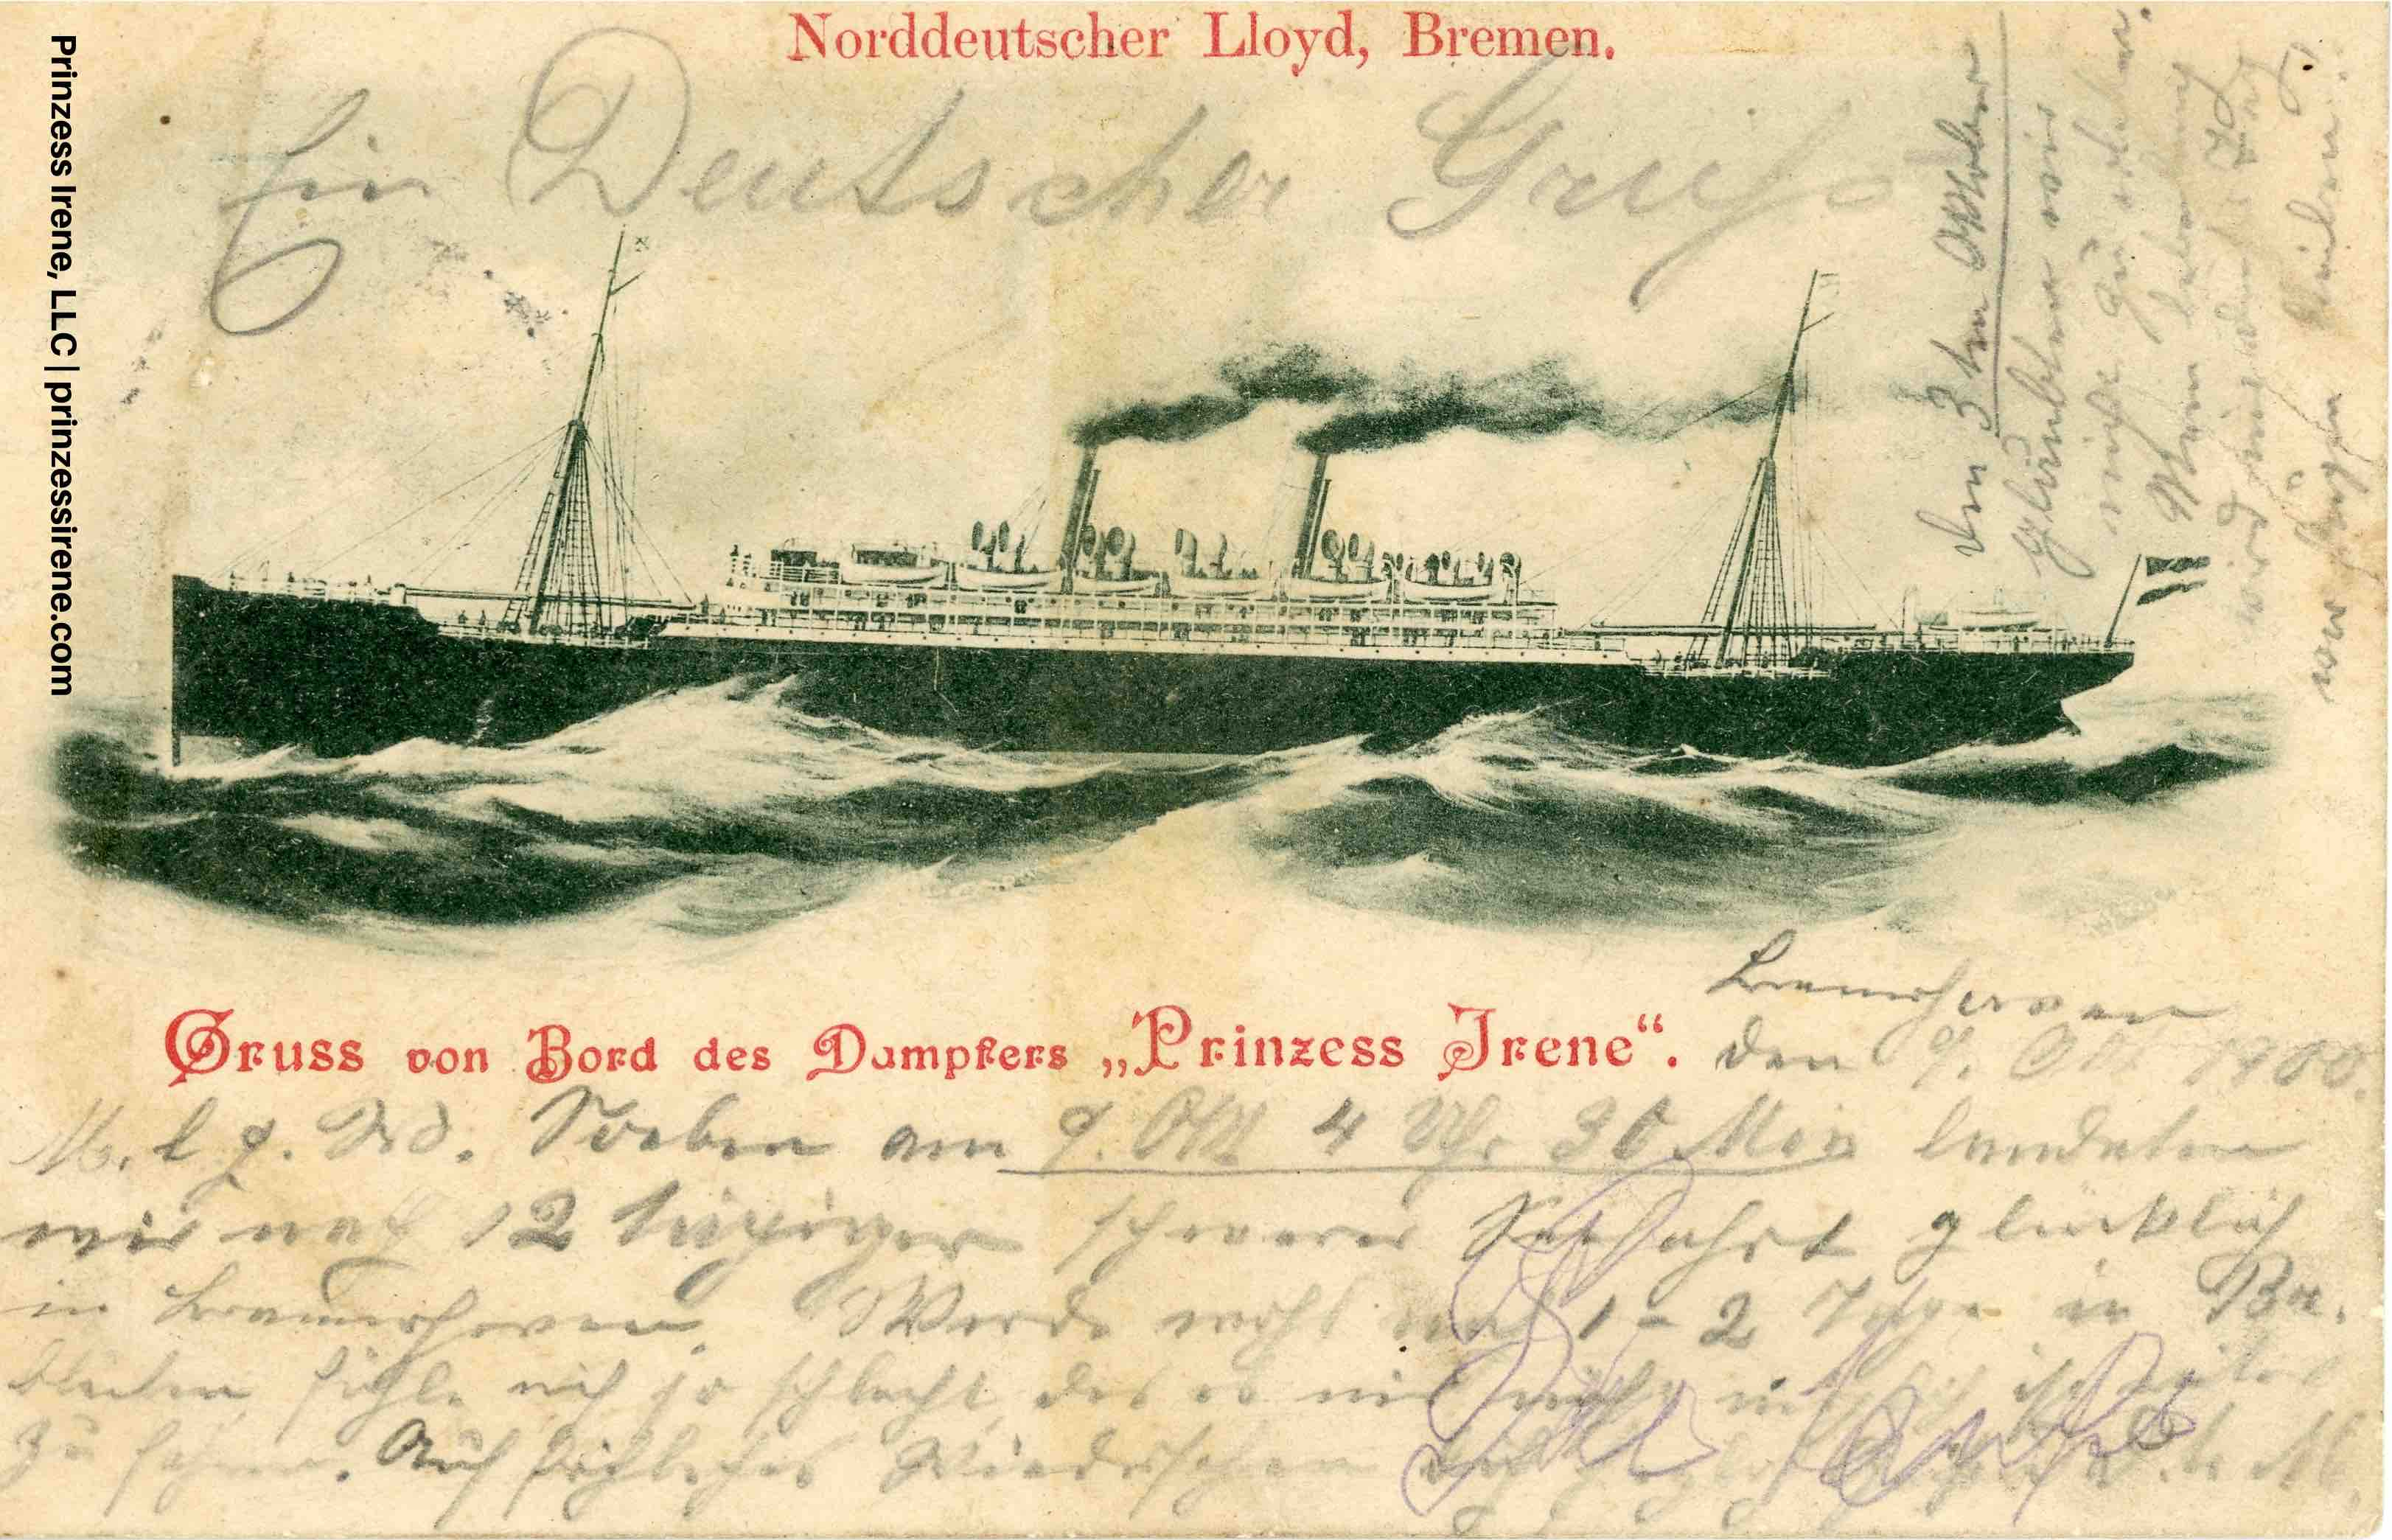 Prinzess Irene. Postcard, dated October 9, 1900.